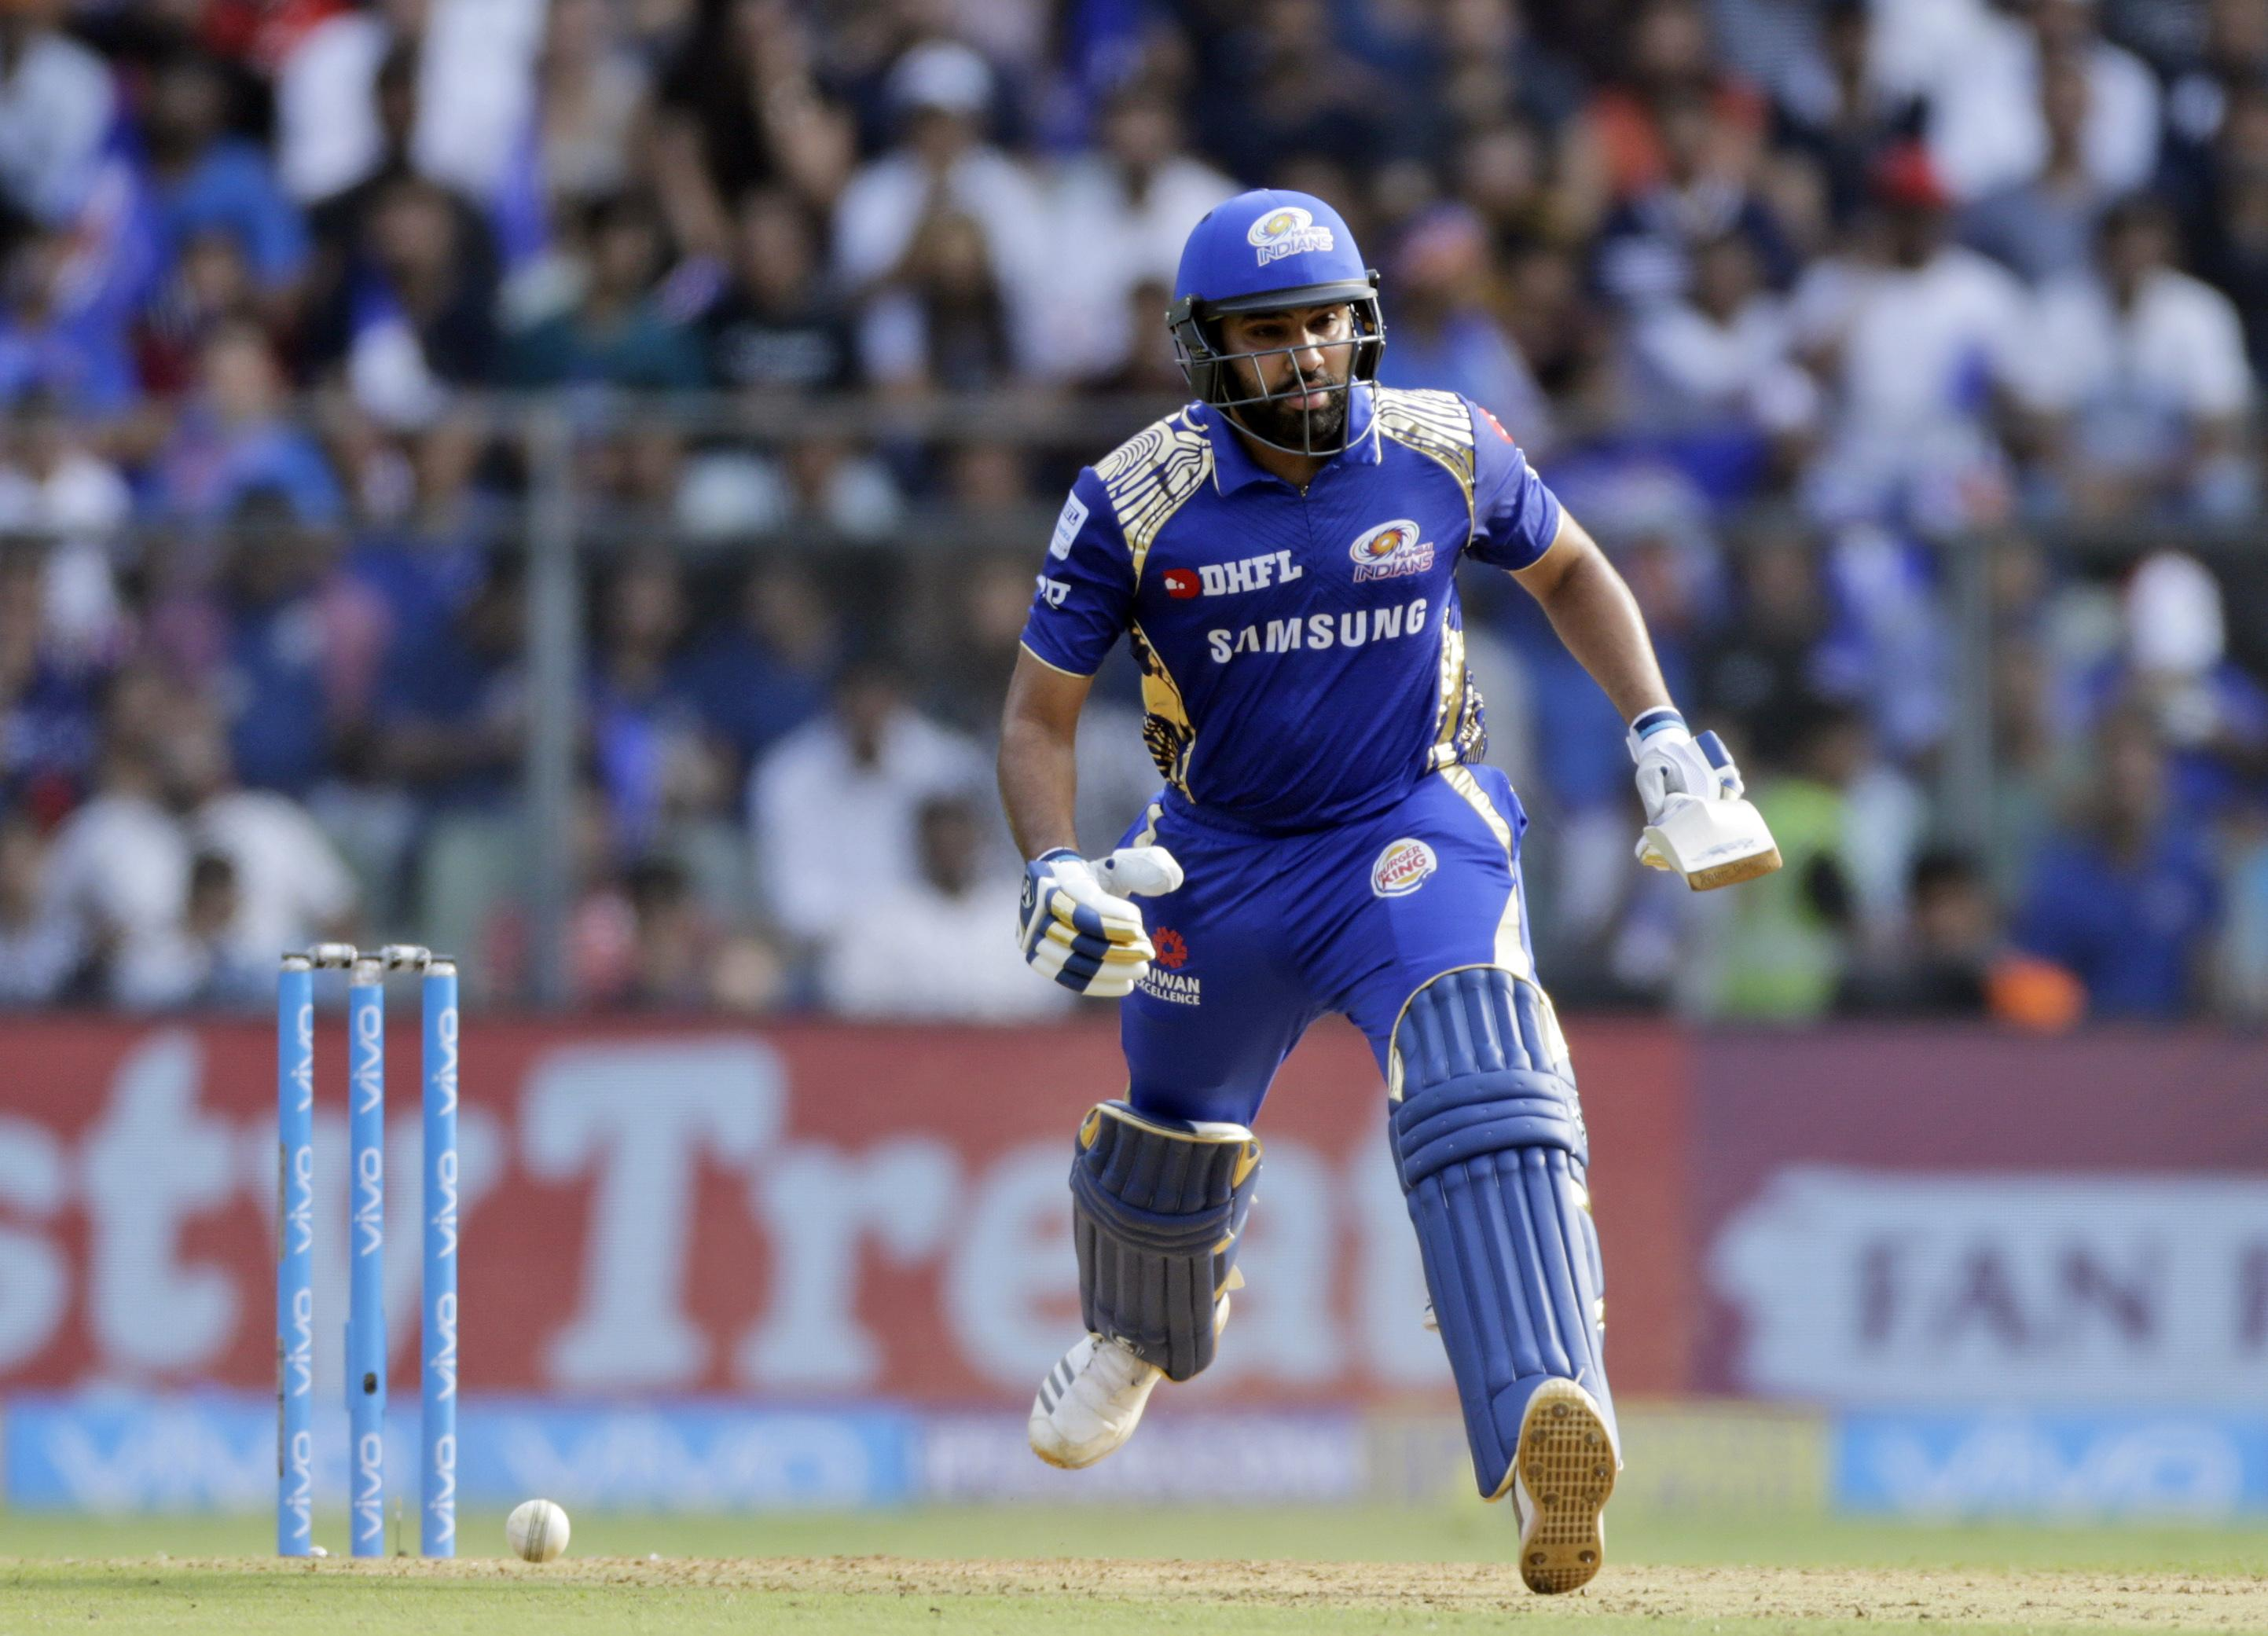 Reigning champions Mumbai Indians have lost three close games to begin this year's IPL